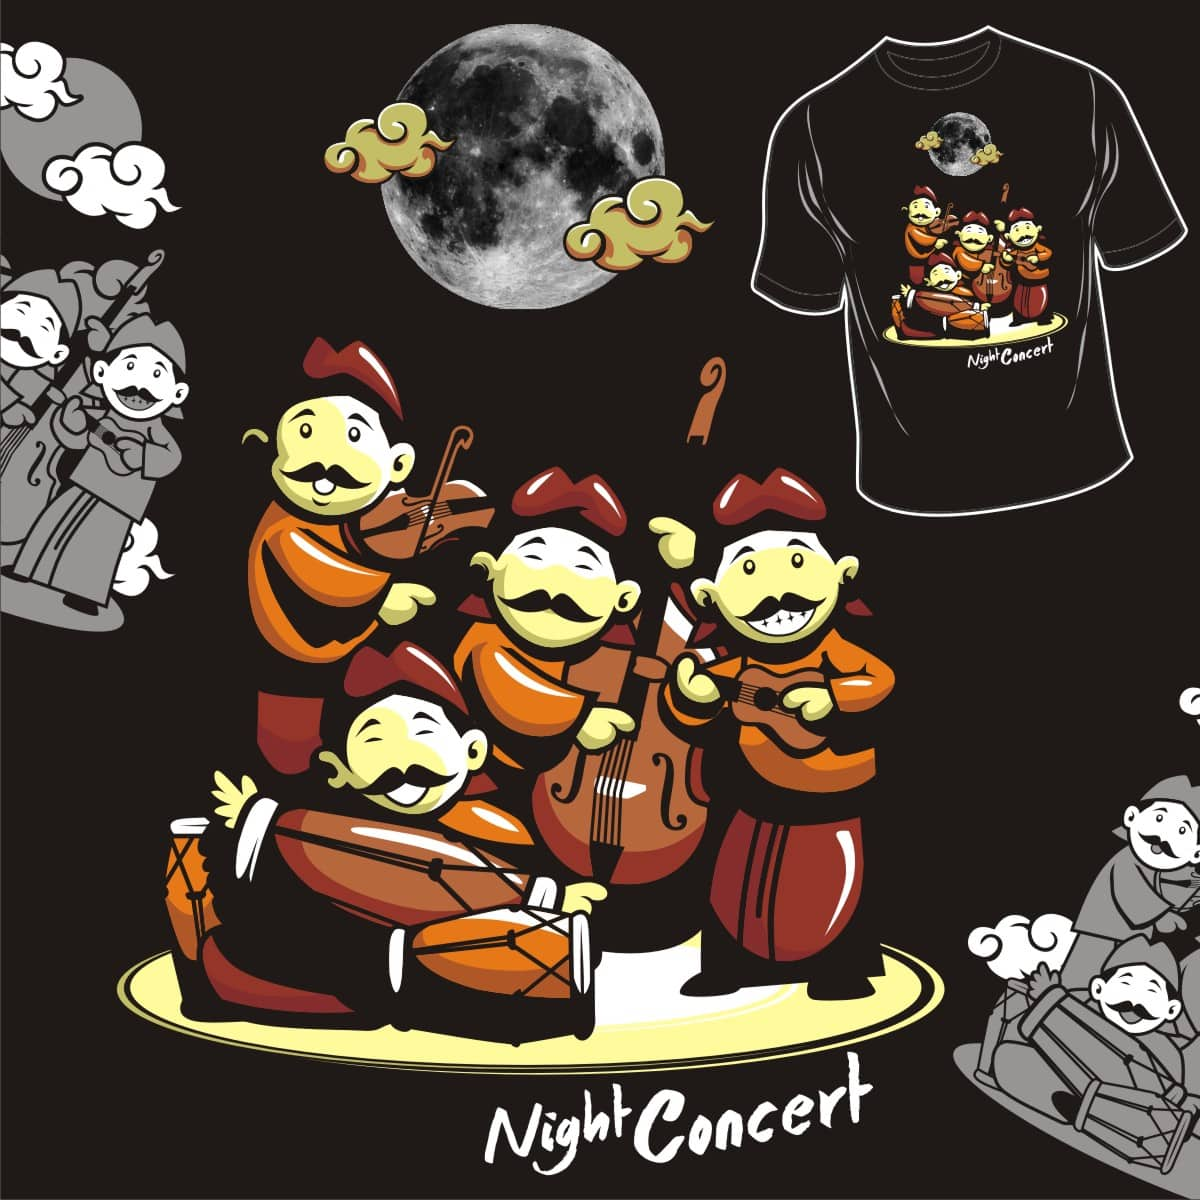 night concert by agha and sibYou on Threadless